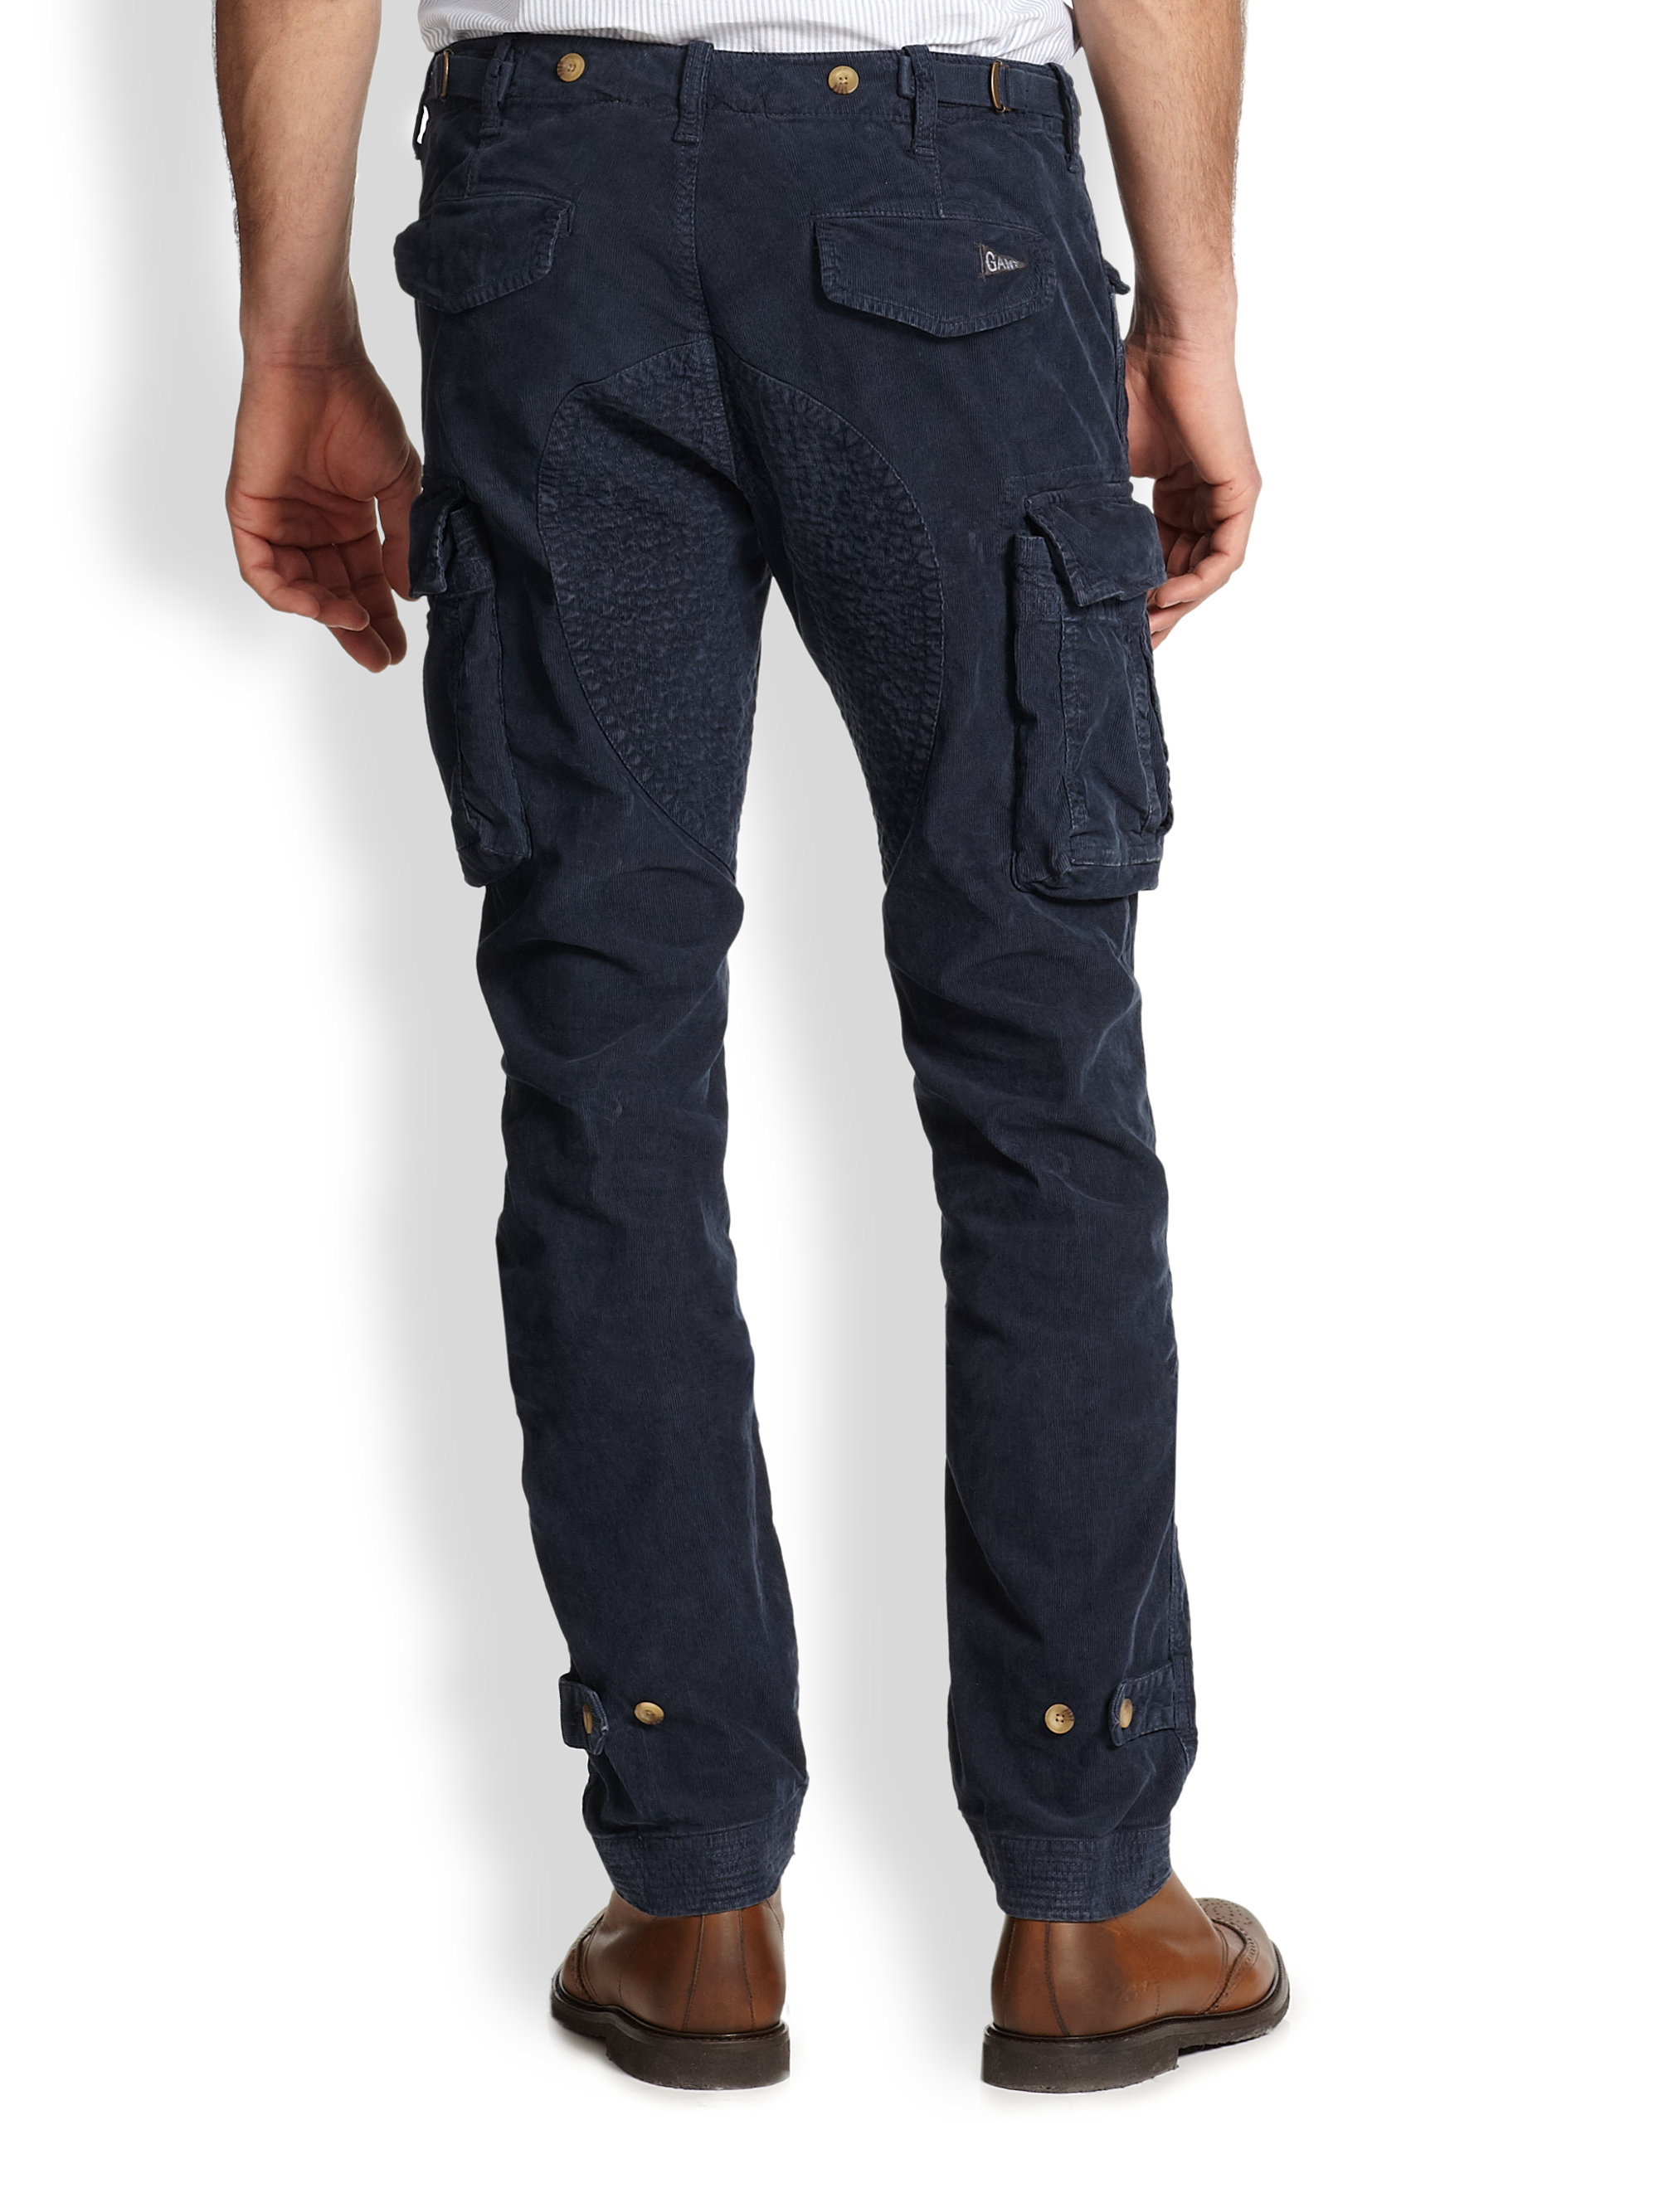 humorrmundiall.ga stocks a wide selection of men's cargo pants & carpenter jeans, from % cotton twill cargos to the RIGGS Workwear® Ripstop Ranger Pant - all featuring the classic styling and comfort you expect from Wrangler.